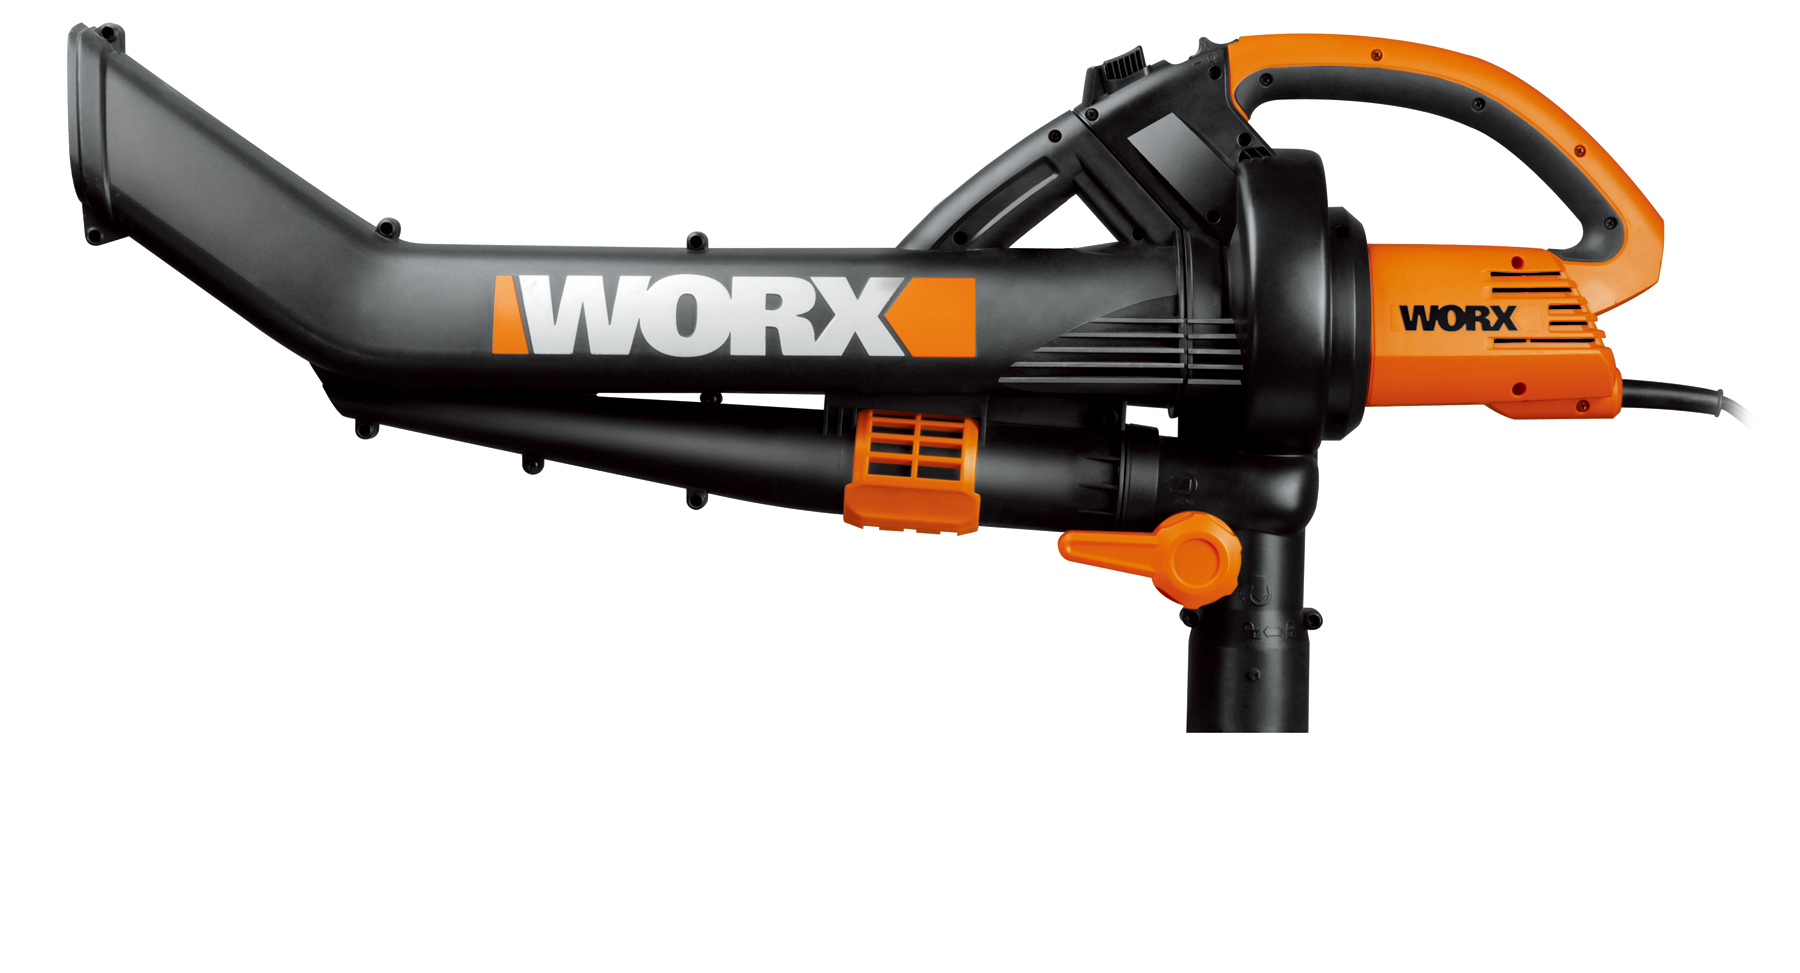 worx electric weed eater manual